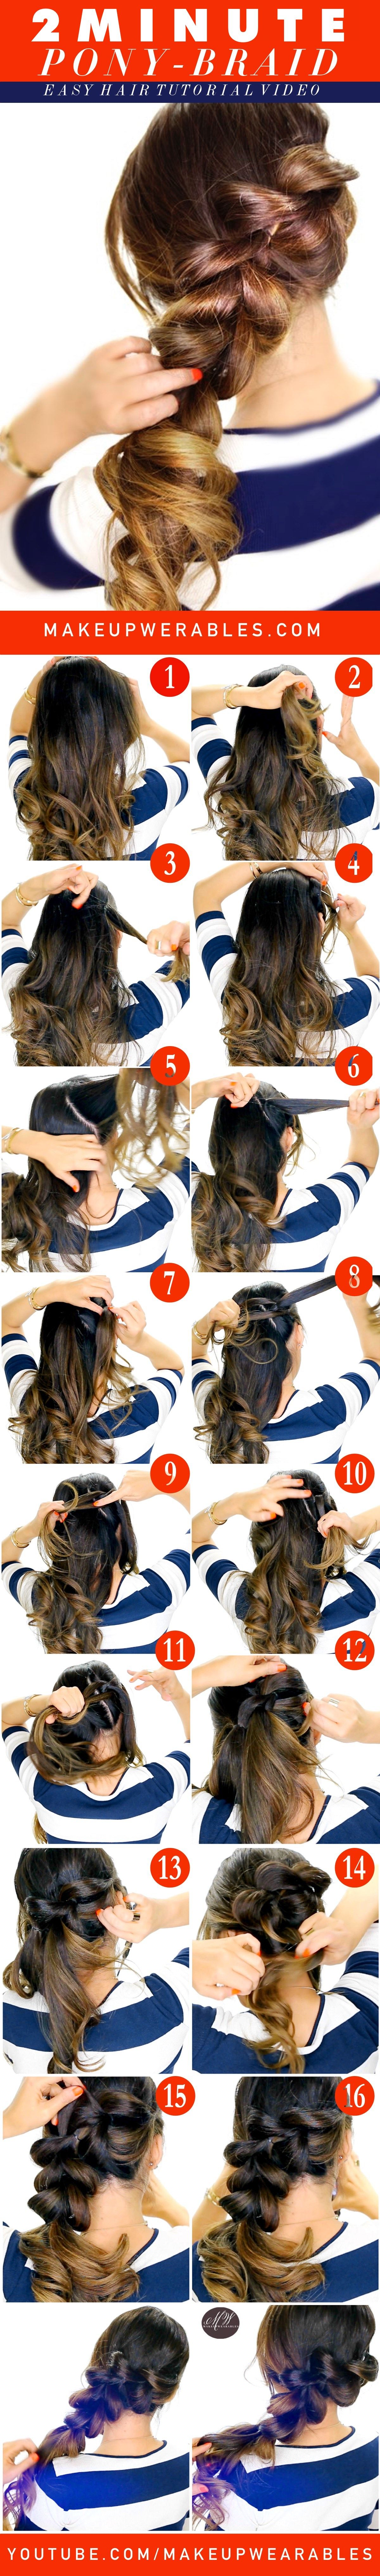 Minute ponytail braid tutorial quick u easy hairstyles hair